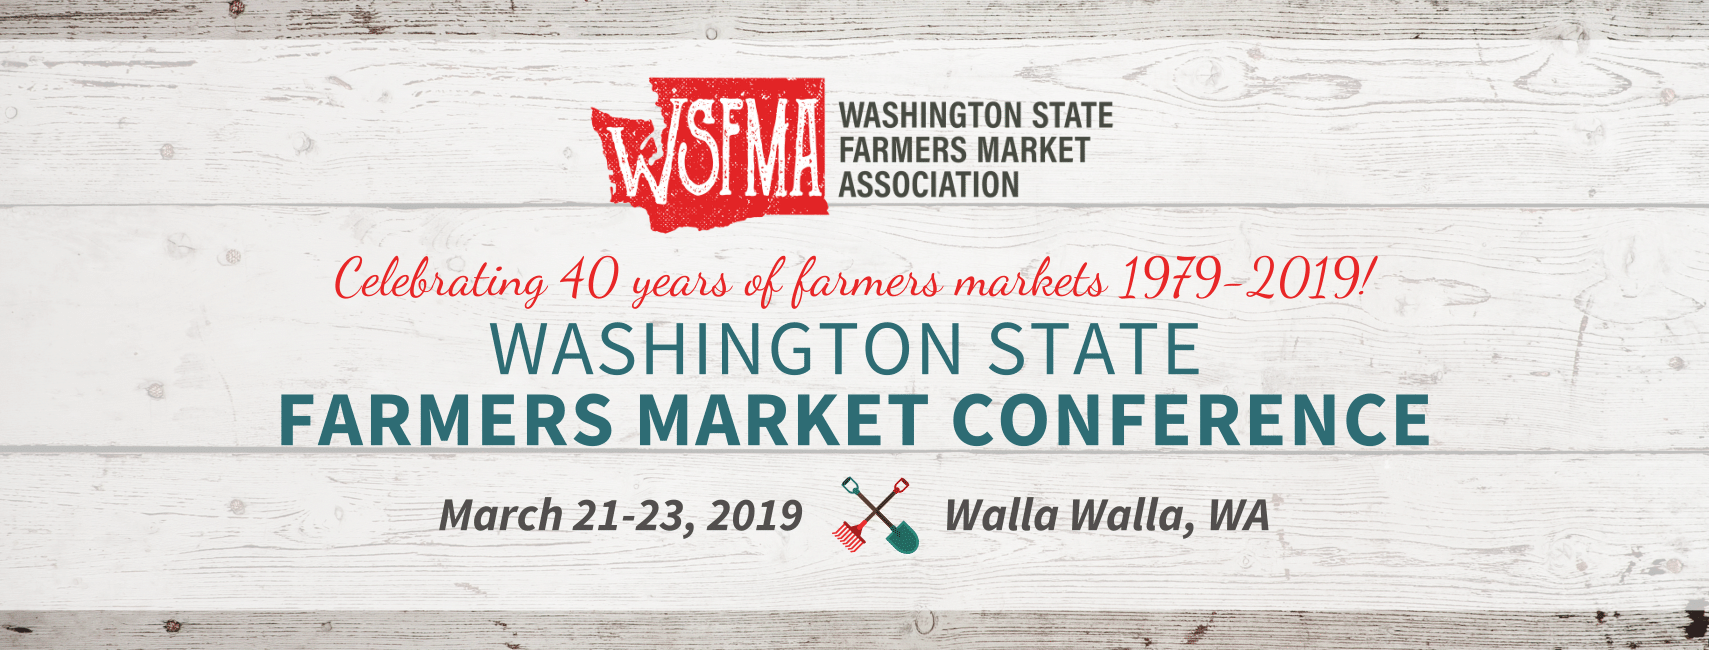 2019 WSFMA Conference - Washington Farmers Market